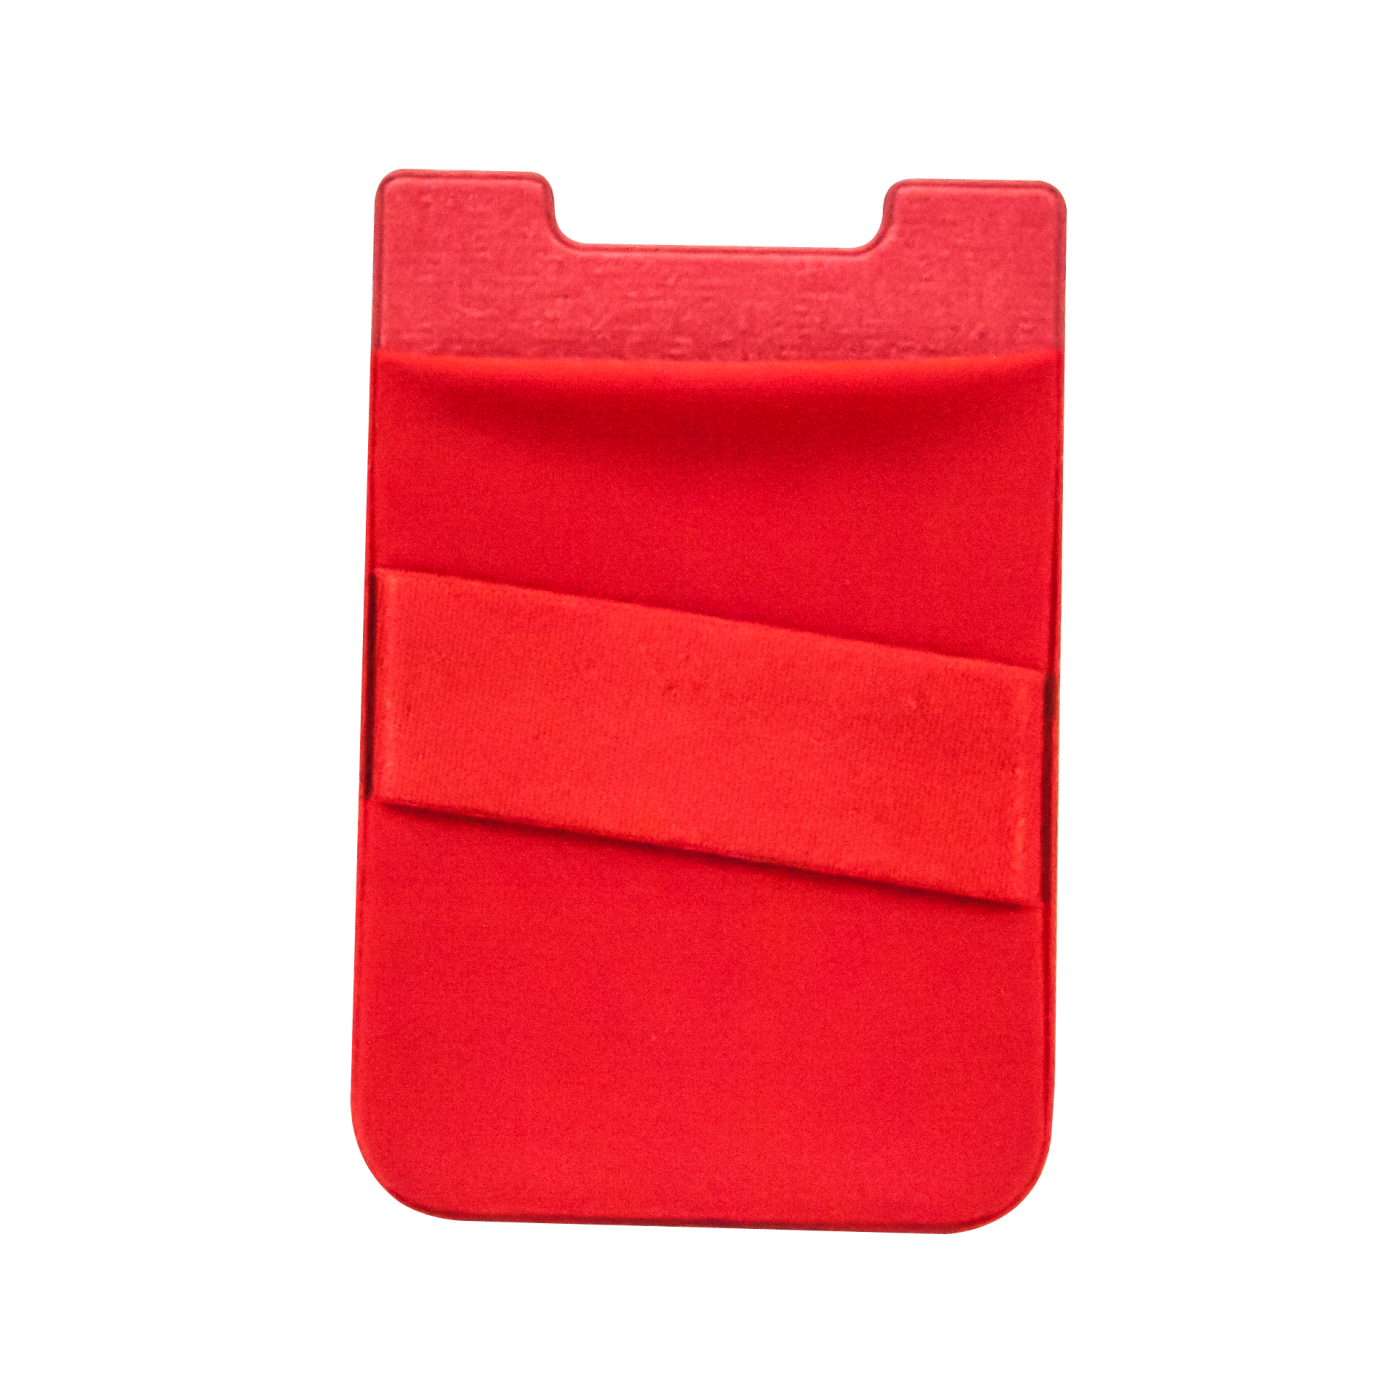 Billboard Adhesive Wallet/ Card Holder For Smartphones Red